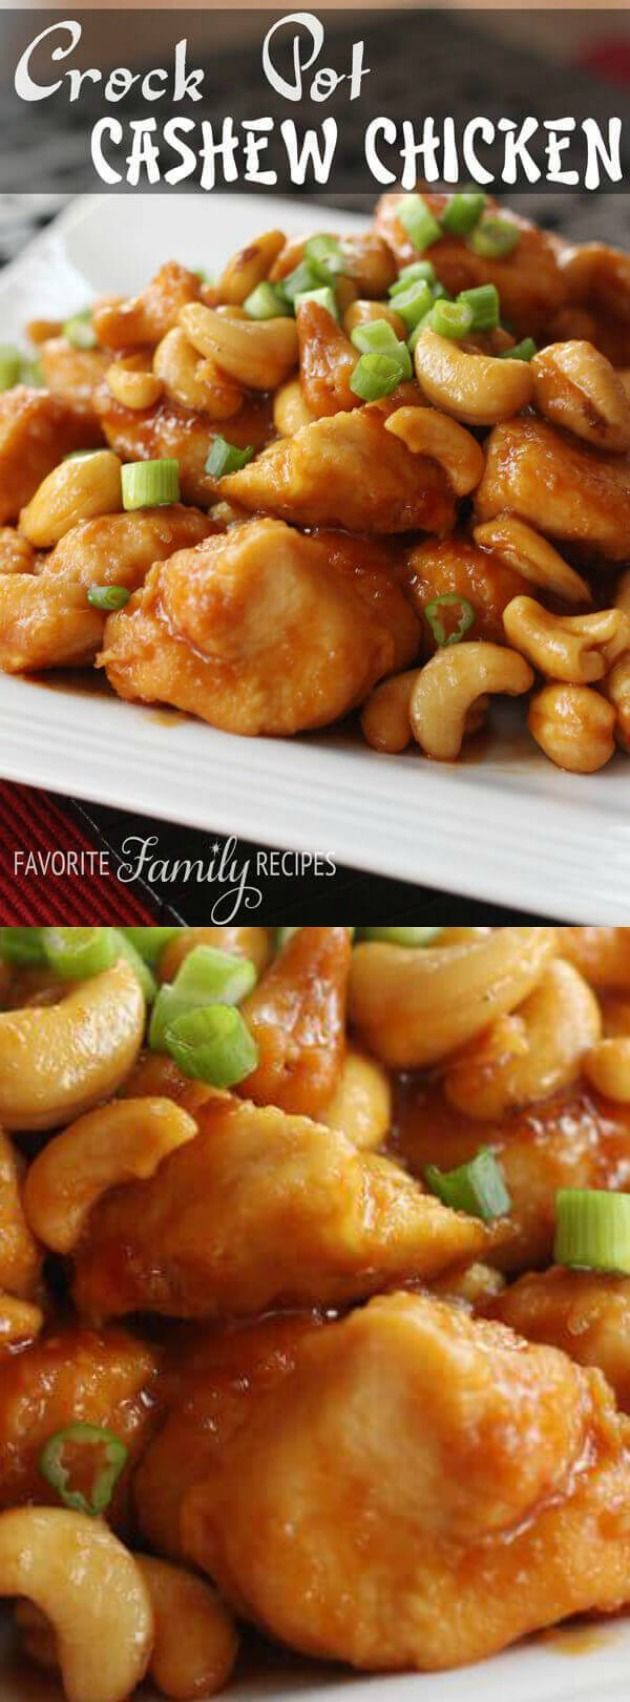 This Crock Pot Cashew Chicken from Favorite Family Recipes. It's an easy to make recipe that you can make at home and it comes out way better than most cashew chicken dishes that you can get from your local restaurant.